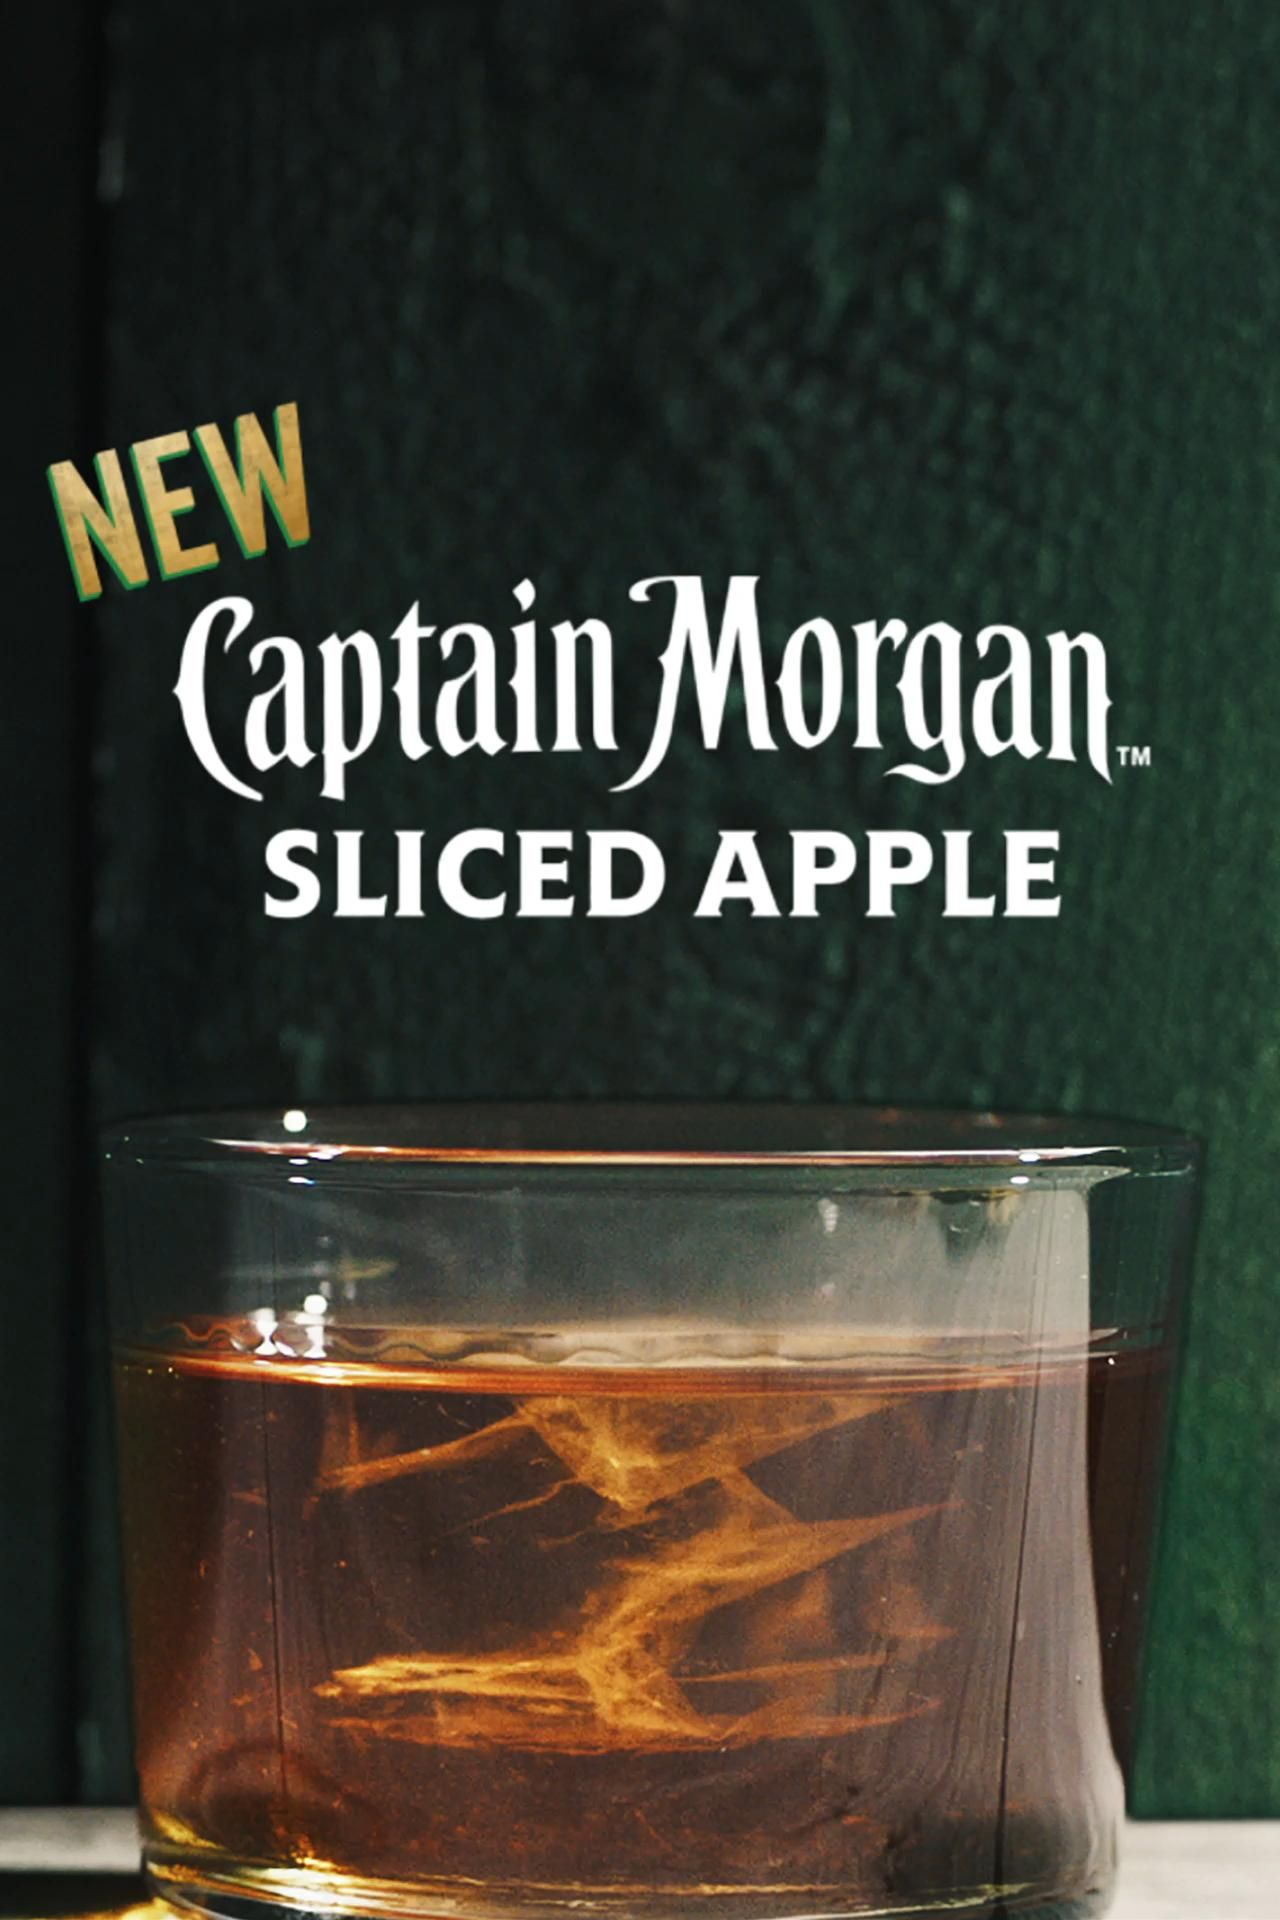 Look Out Below Delicious New Captain Morgan Sliced Apple Is Ready To Make A Splash Dropping Soon Video In 2020 Mixed Drinks Recipes Fun Drinks Halloween Drinks